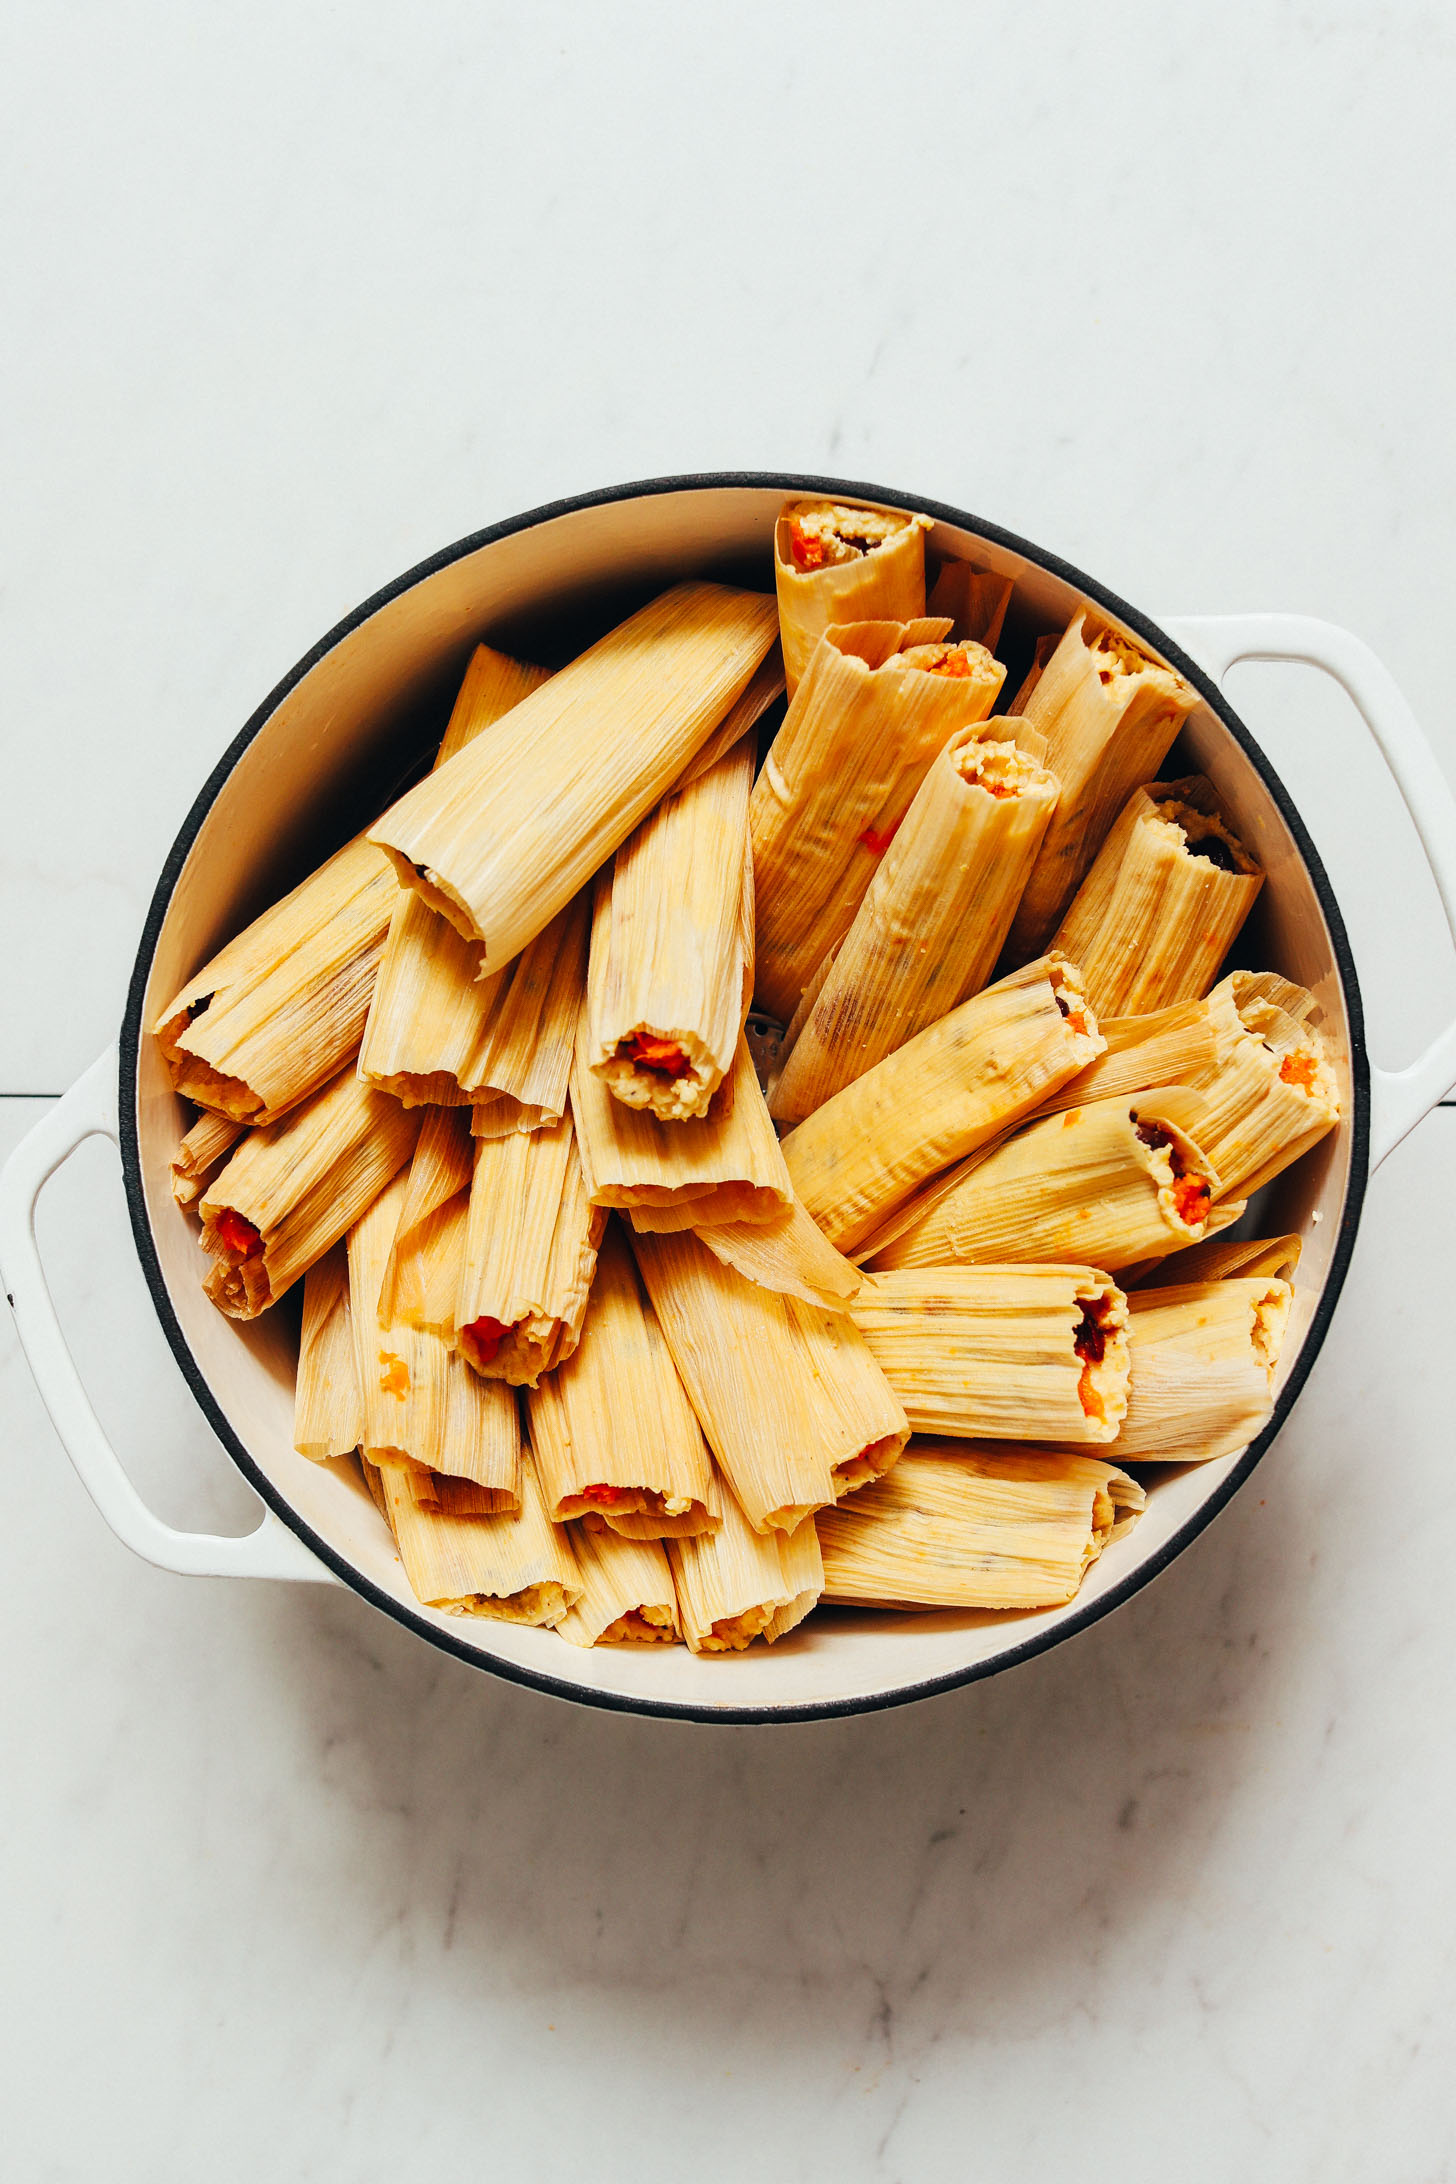 Dutch oven filled with homemade tamales